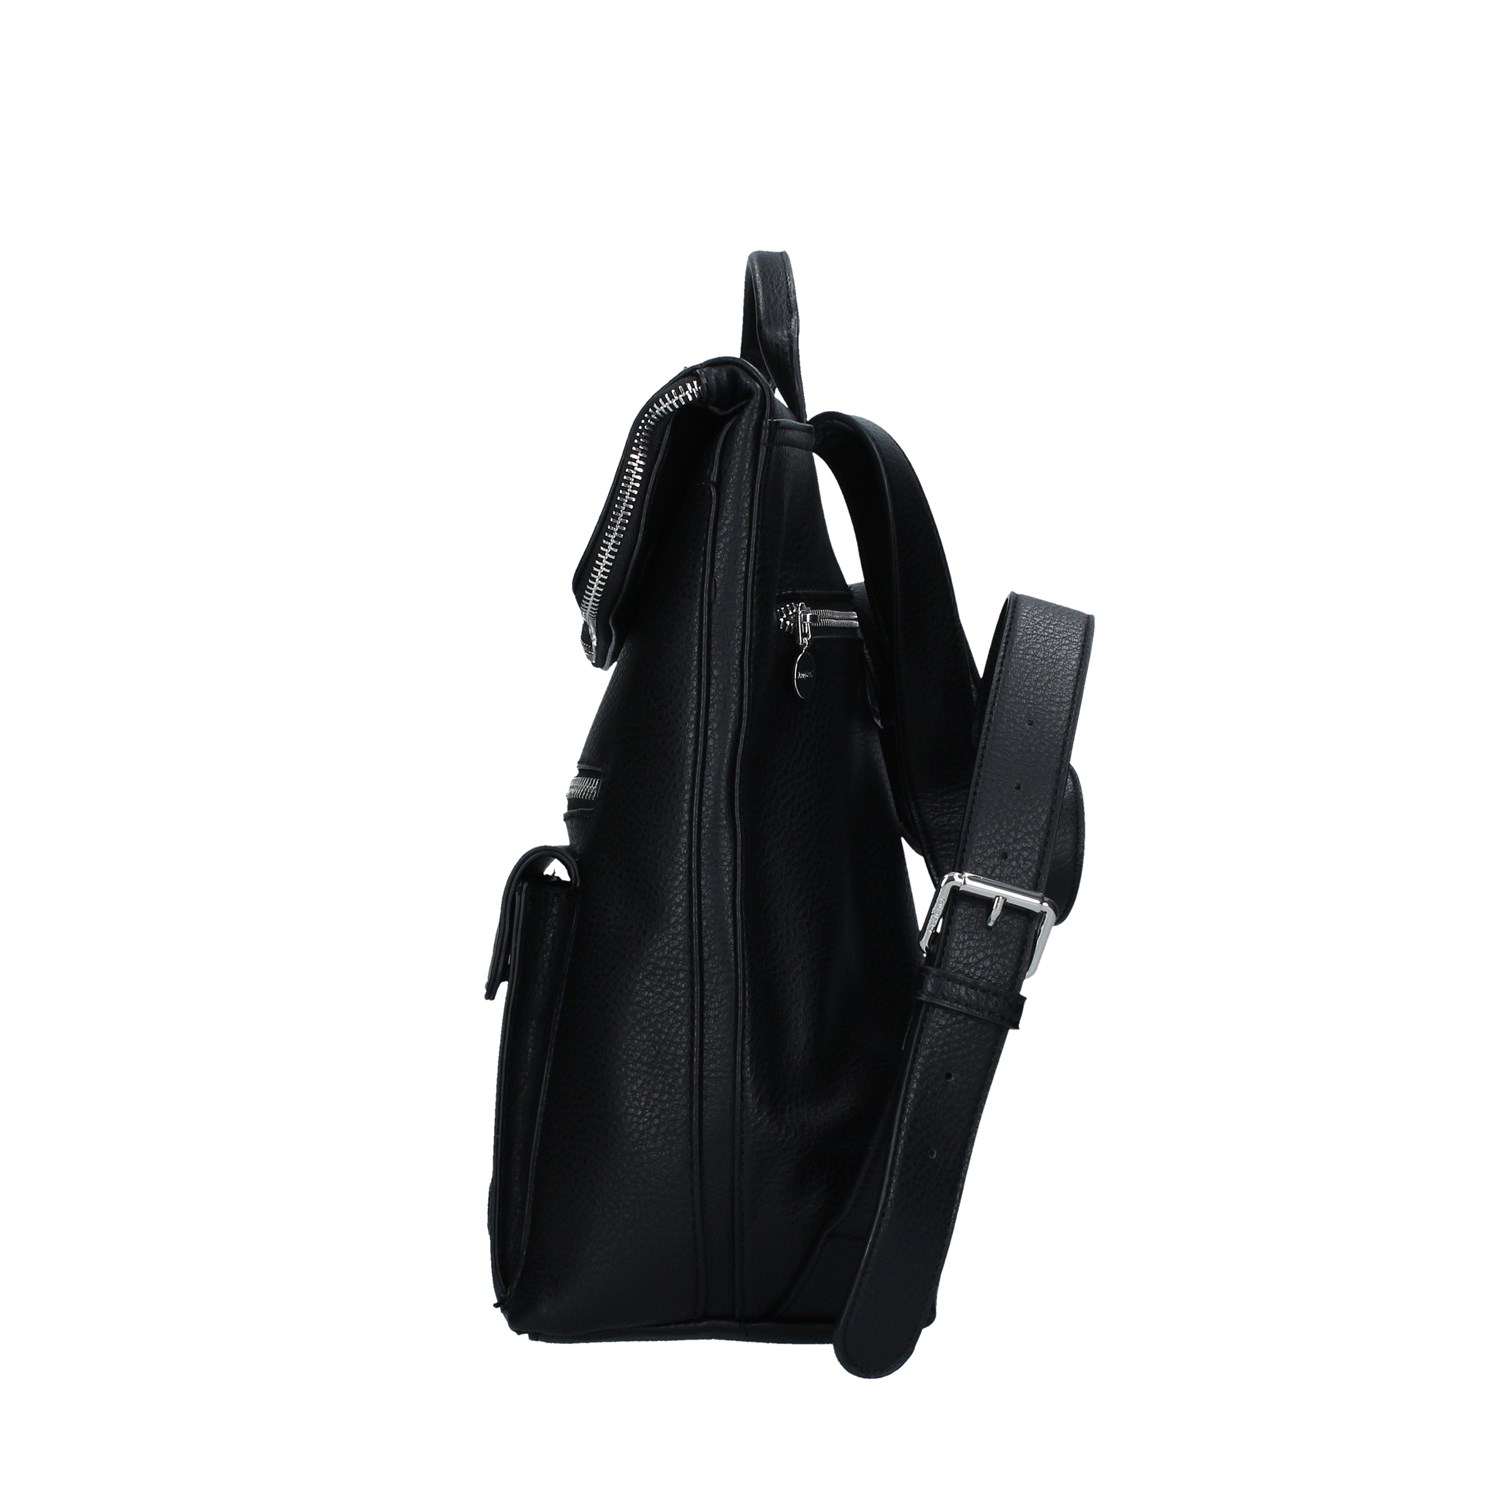 Desigual Bags Accessories Backpacks BLACK 21SAKP08